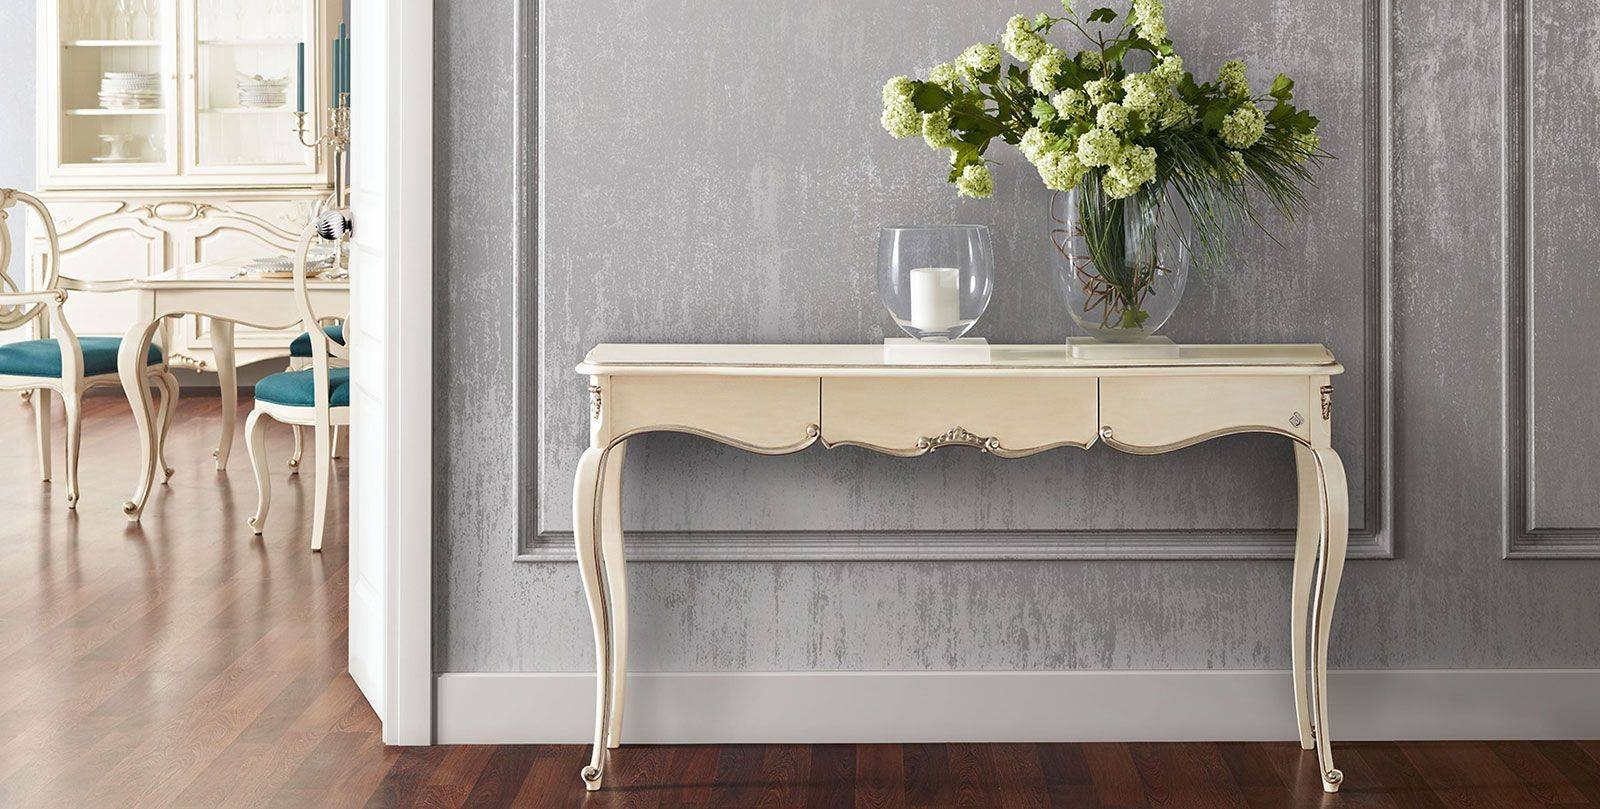 Classic Sideboard Table / Wooden / Rectangular / With Drawer Throughout 2017 Sideboard Tables (View 15 of 15)